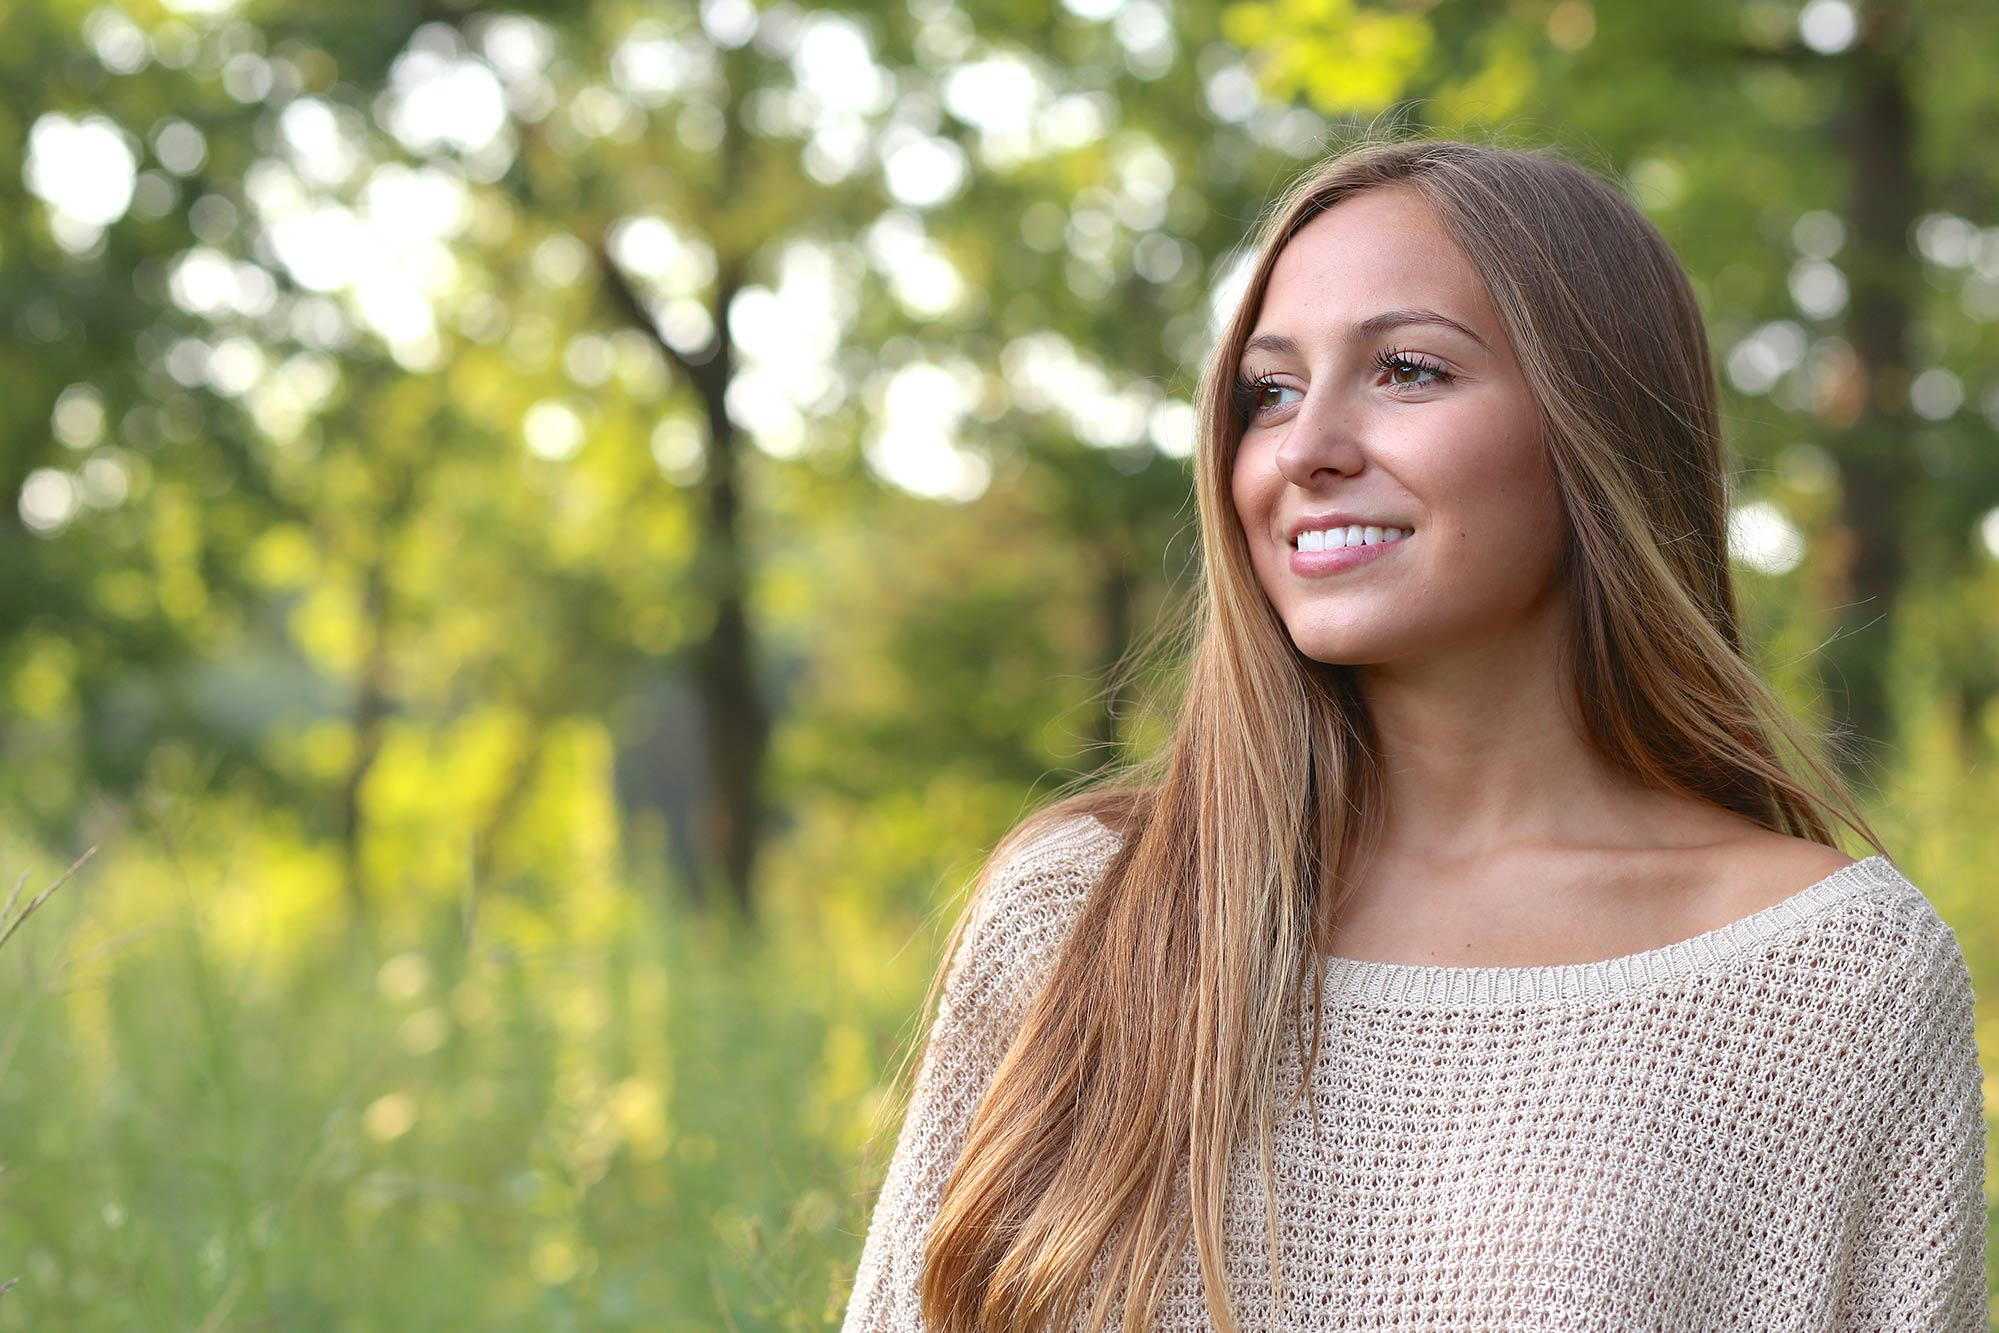 Senior Photo of Girl in a Field  |  LaPanta Photography  |  Graduating Senior Portraits in Shoreview, Minnesota